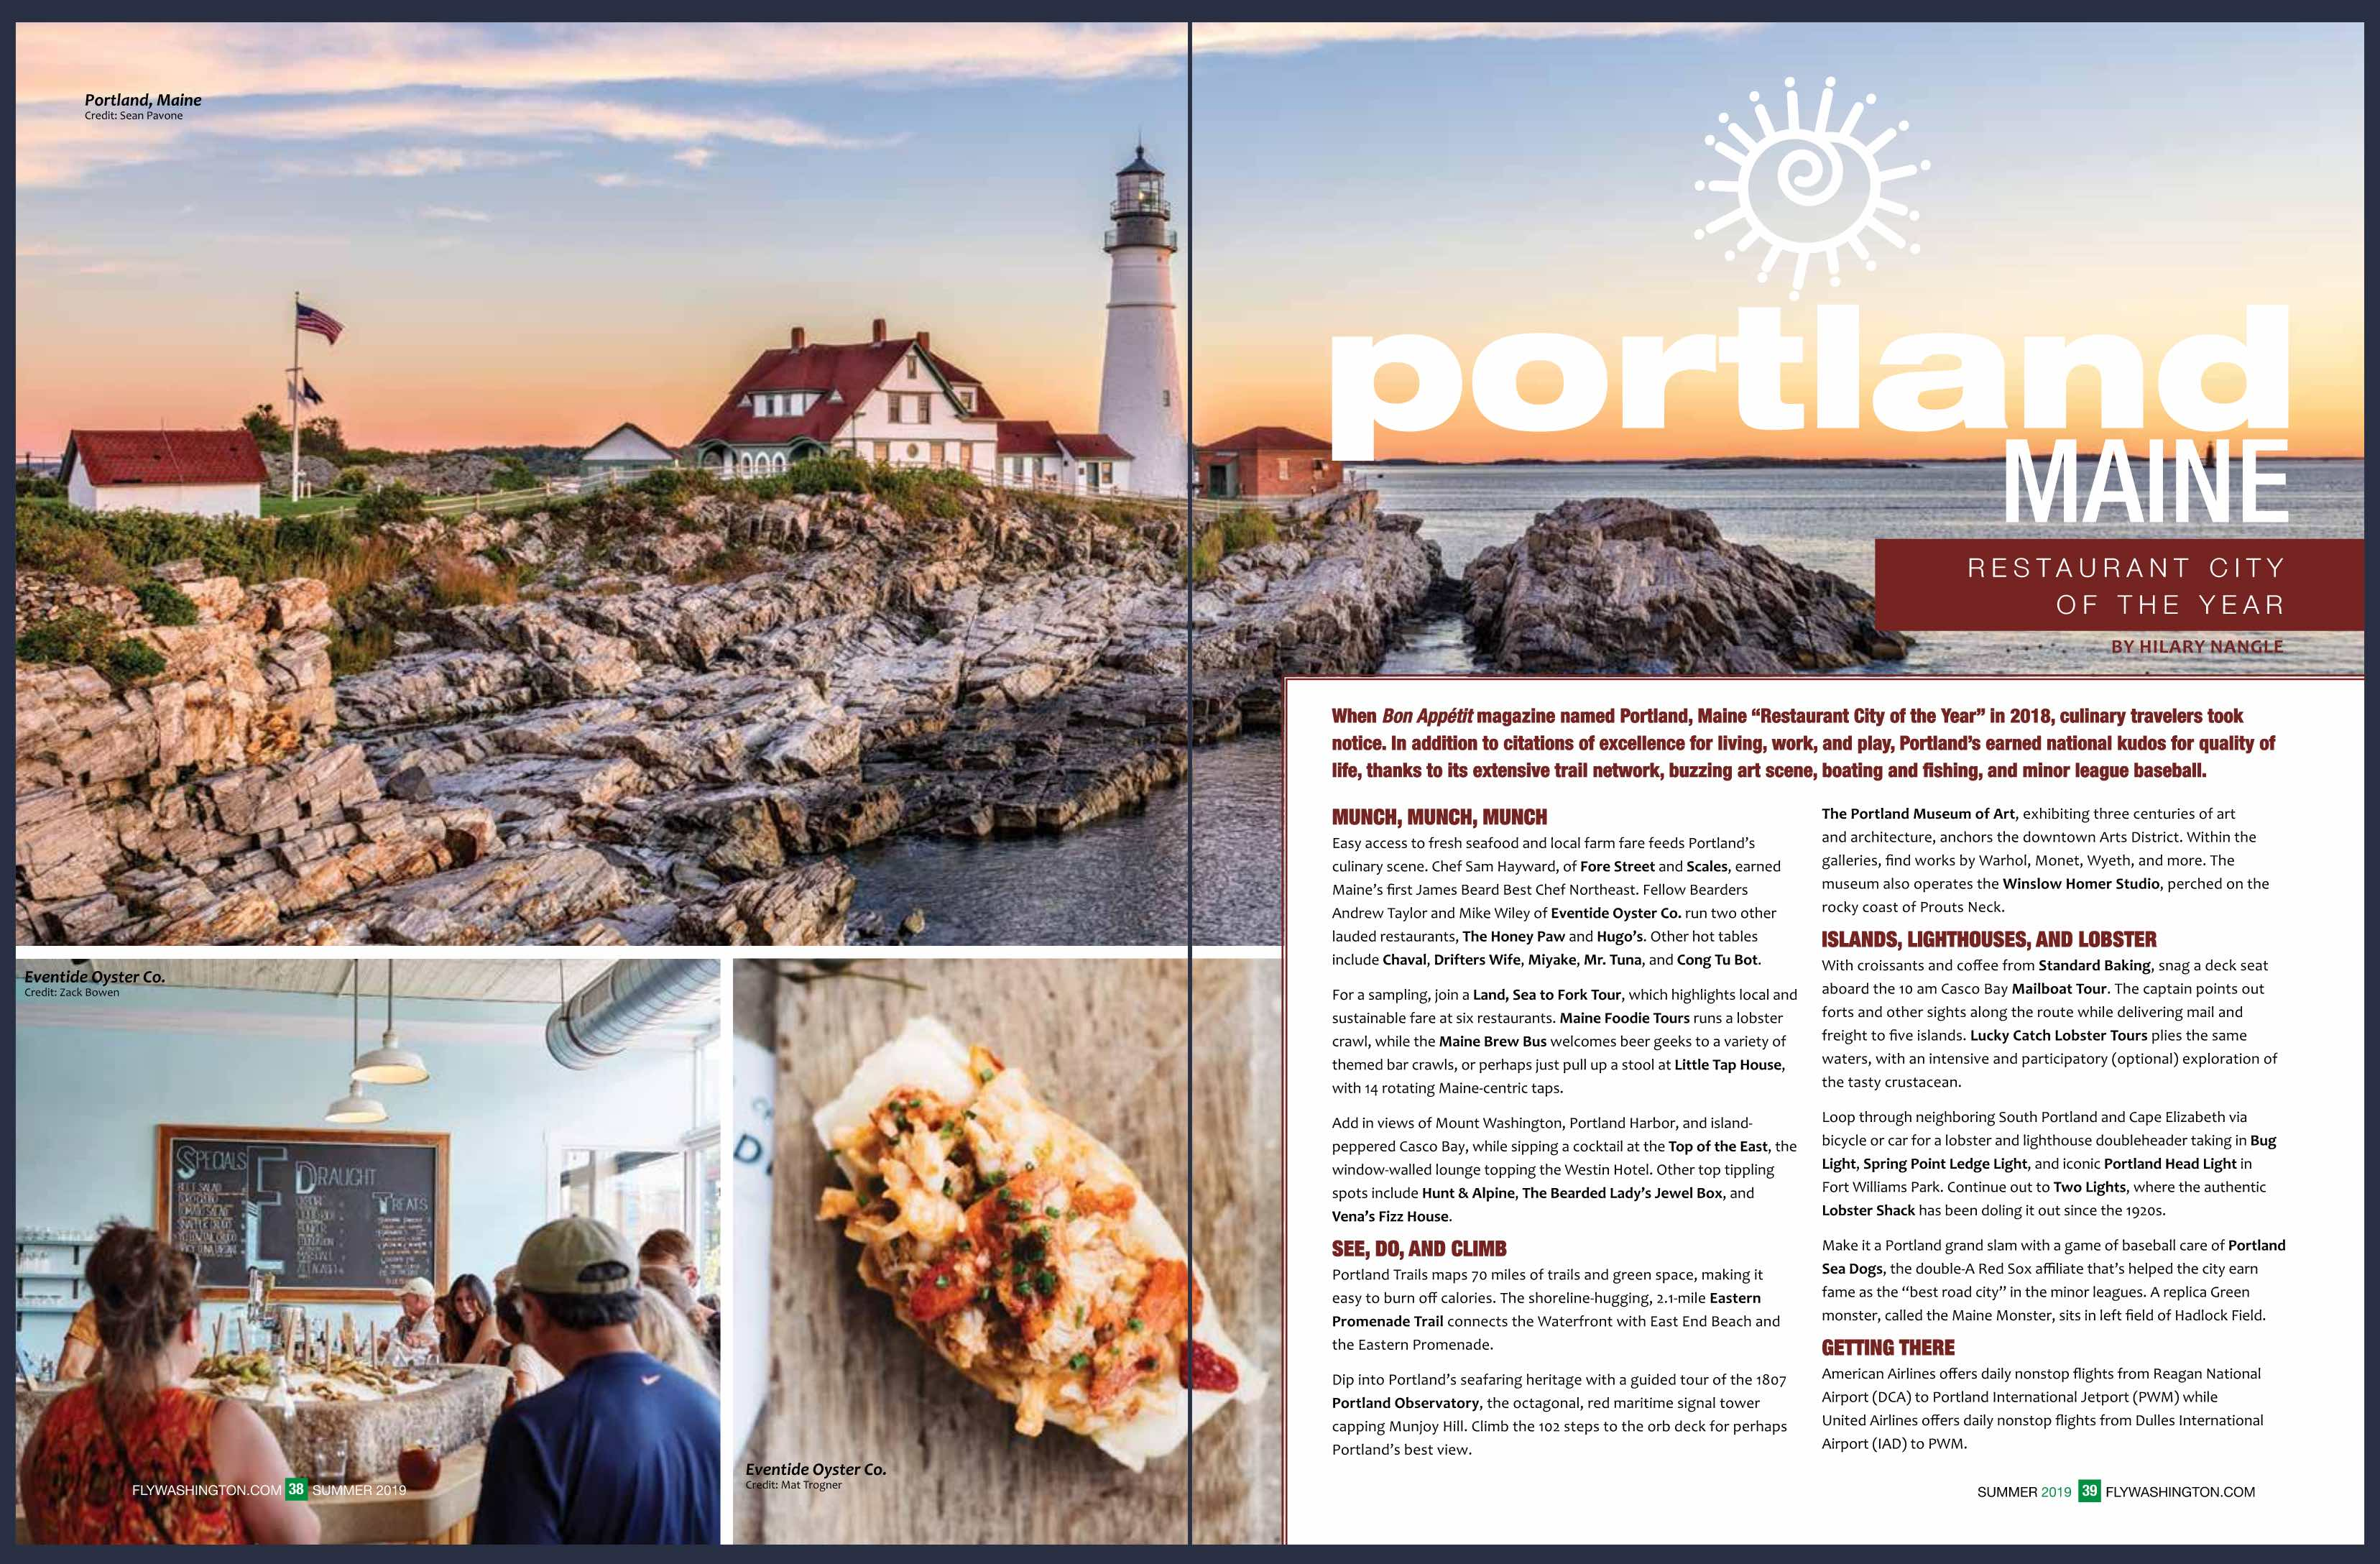 Portland\\\\\\\\\\\\\\\\\\\\\\\\\\\\\\\'S Best Restaurants 2020 Click here to see articles by Hilary Nangle, the Maine Travel Maven